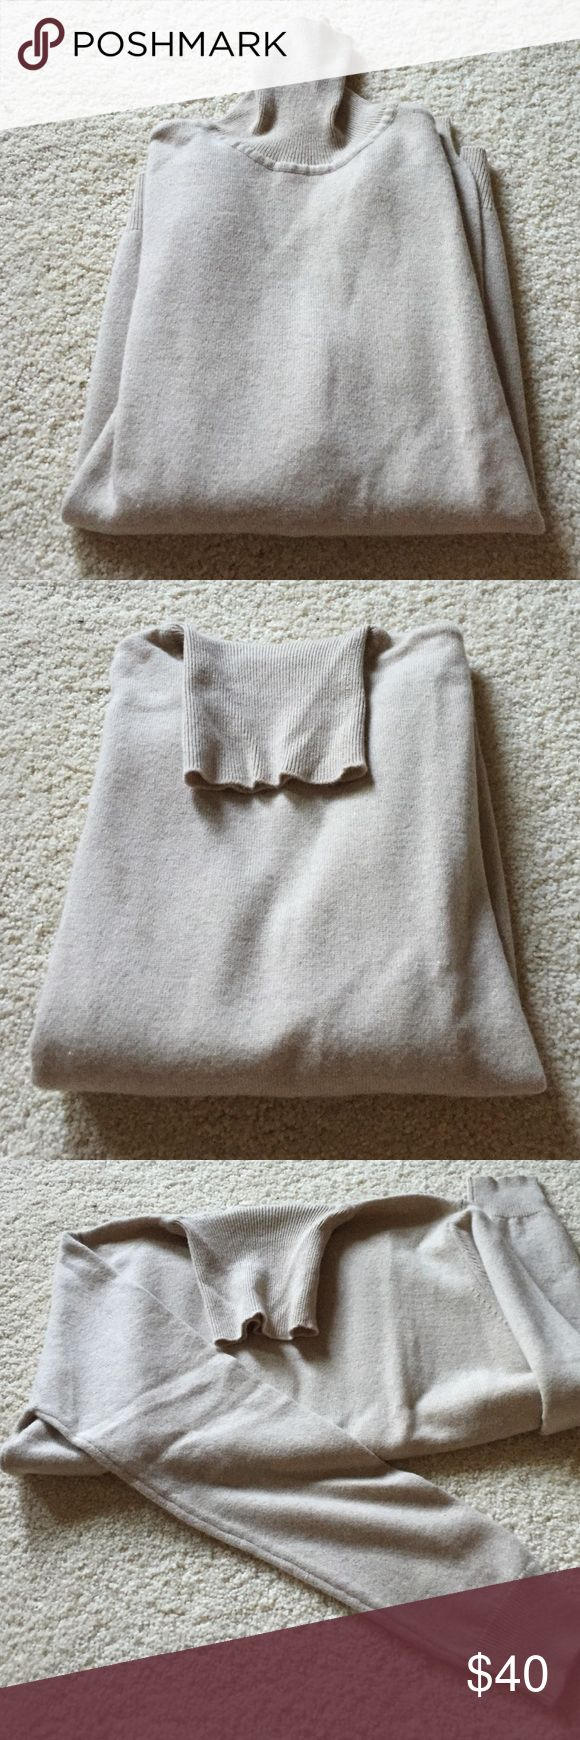 """Country Shop Cashmere Sweater Excellent condition. 100% cashmere. Thick and soft. Long sleeves, turtleneck. Banded sleeves and bottom edge. Beige. Not from a smoke free house. Dry clean only. 19"""" armpit to armpit. 23.5"""" long from shoulder. Country Shop Sweaters Cowl & Turtlenecks"""